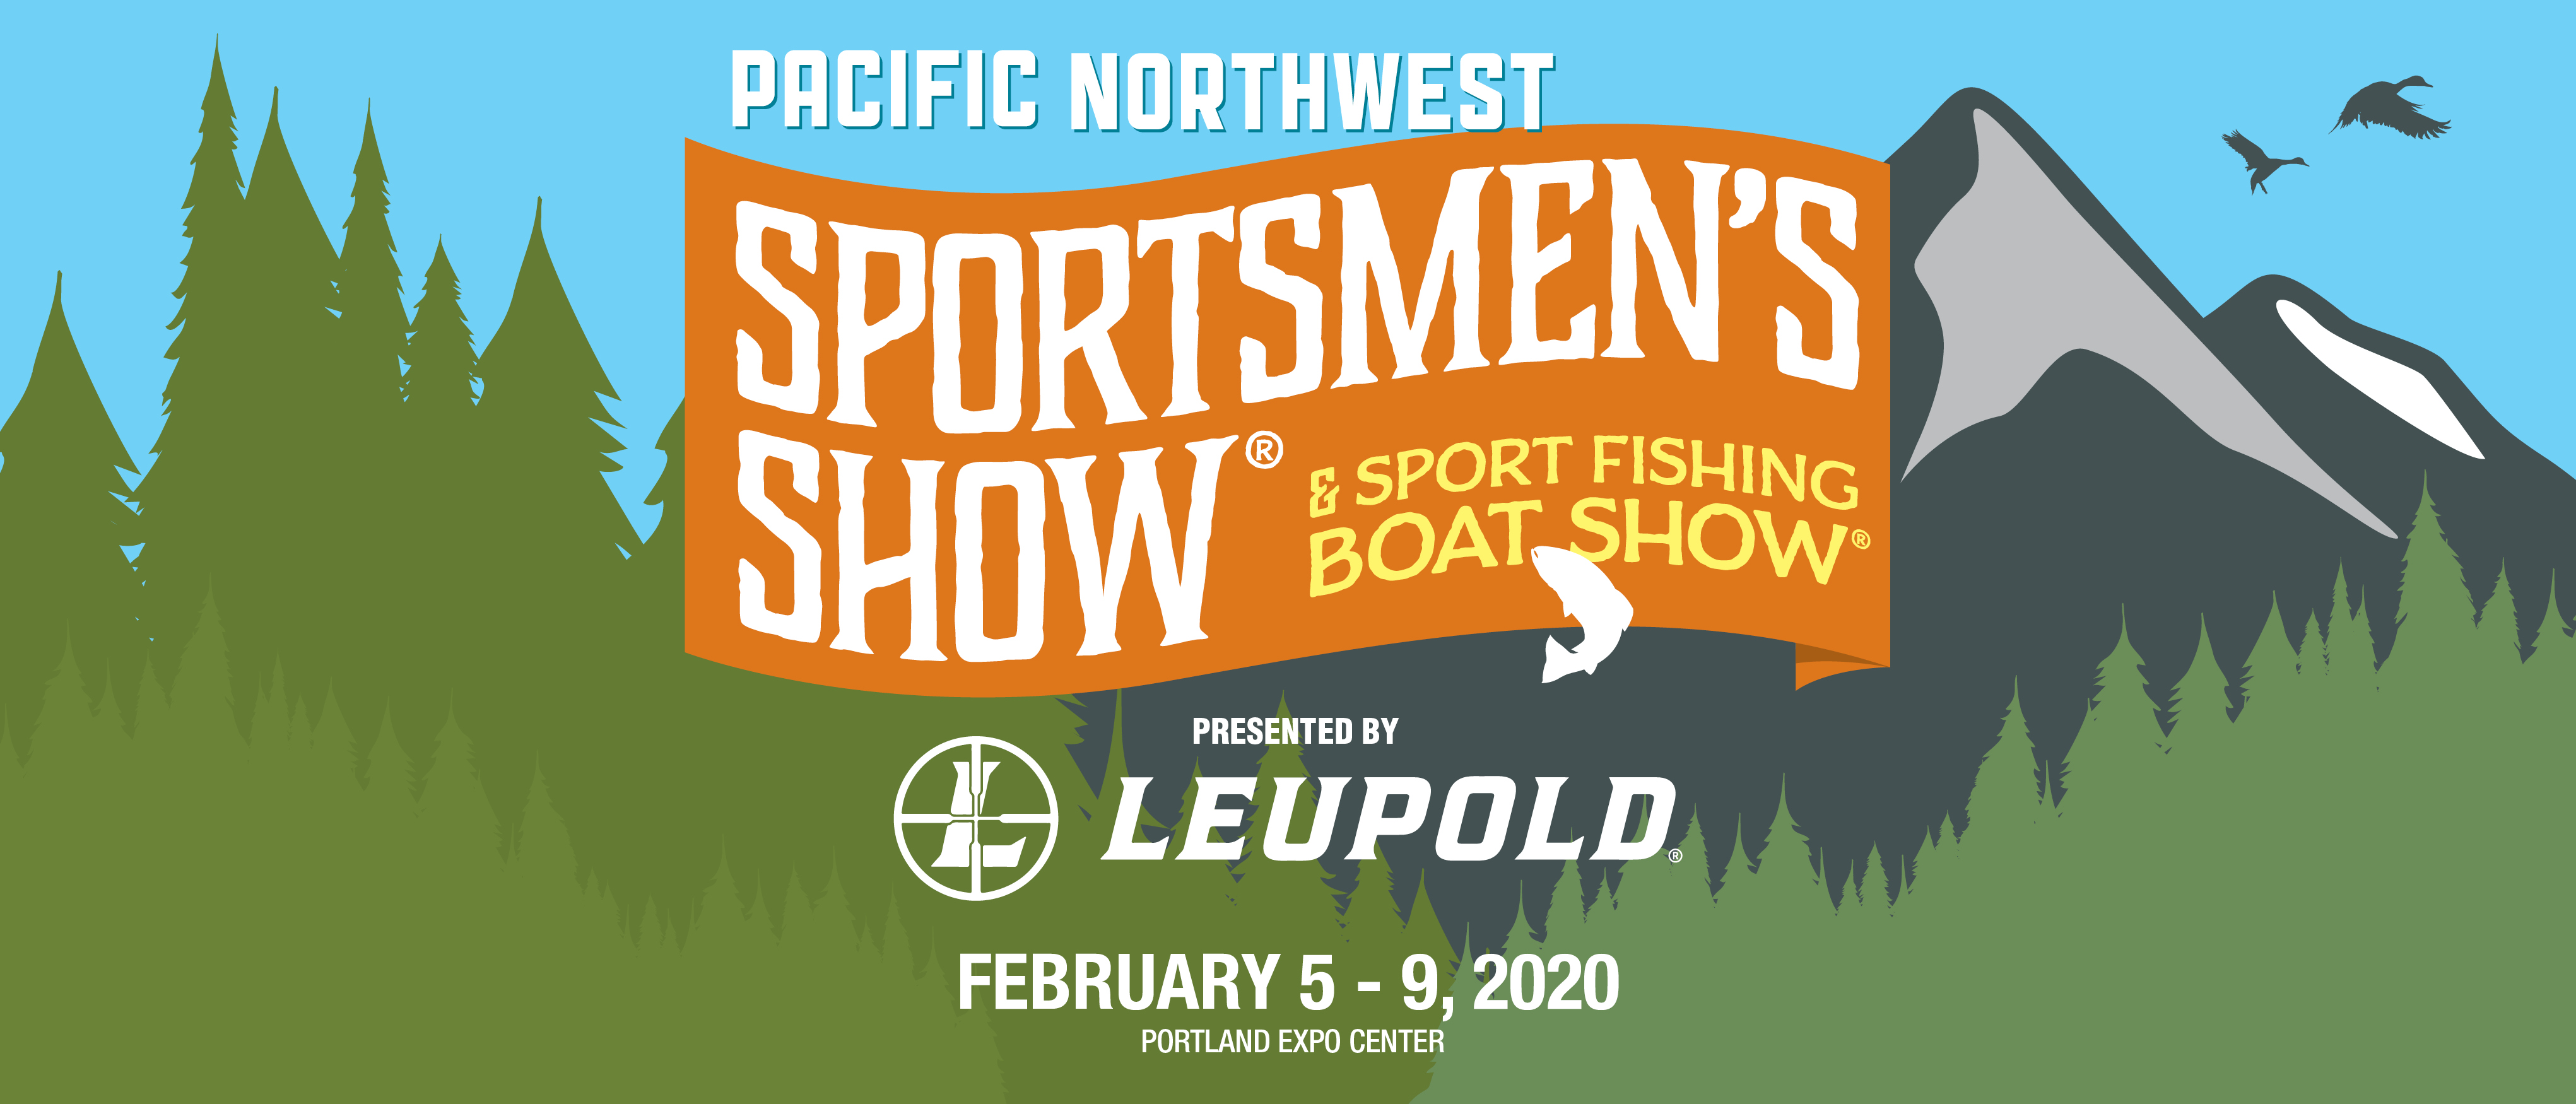 Sportsman Show 2020.Pacific Northwest Sportsmen S Show 2020 Got Your 6 Fishing